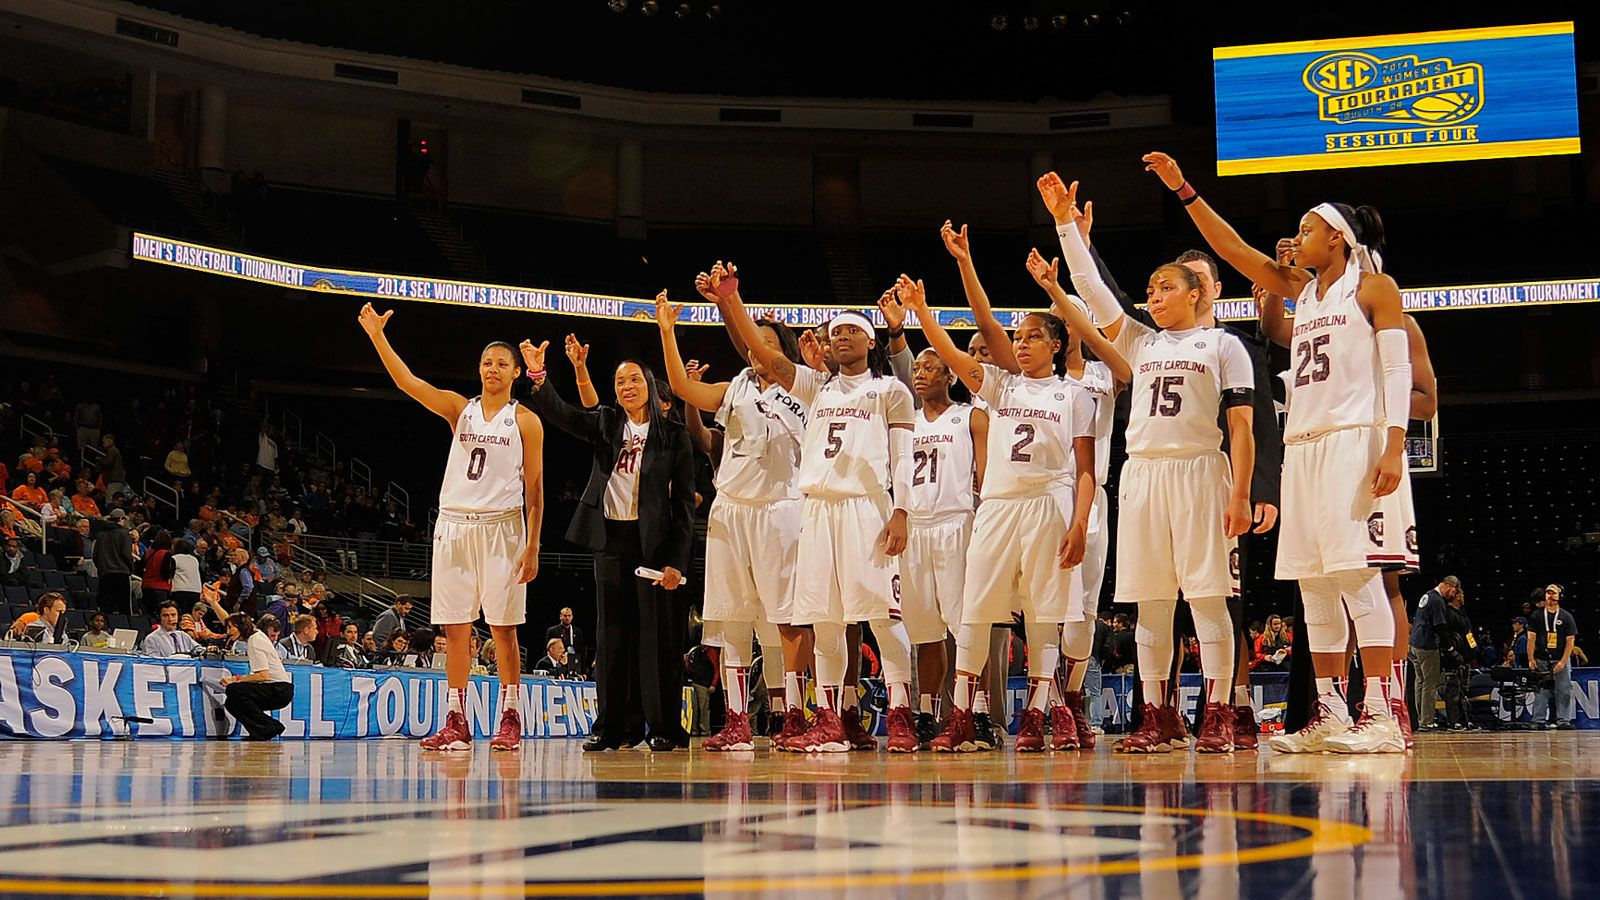 South Carolina tabbed as 2015 SEC WBB Champion